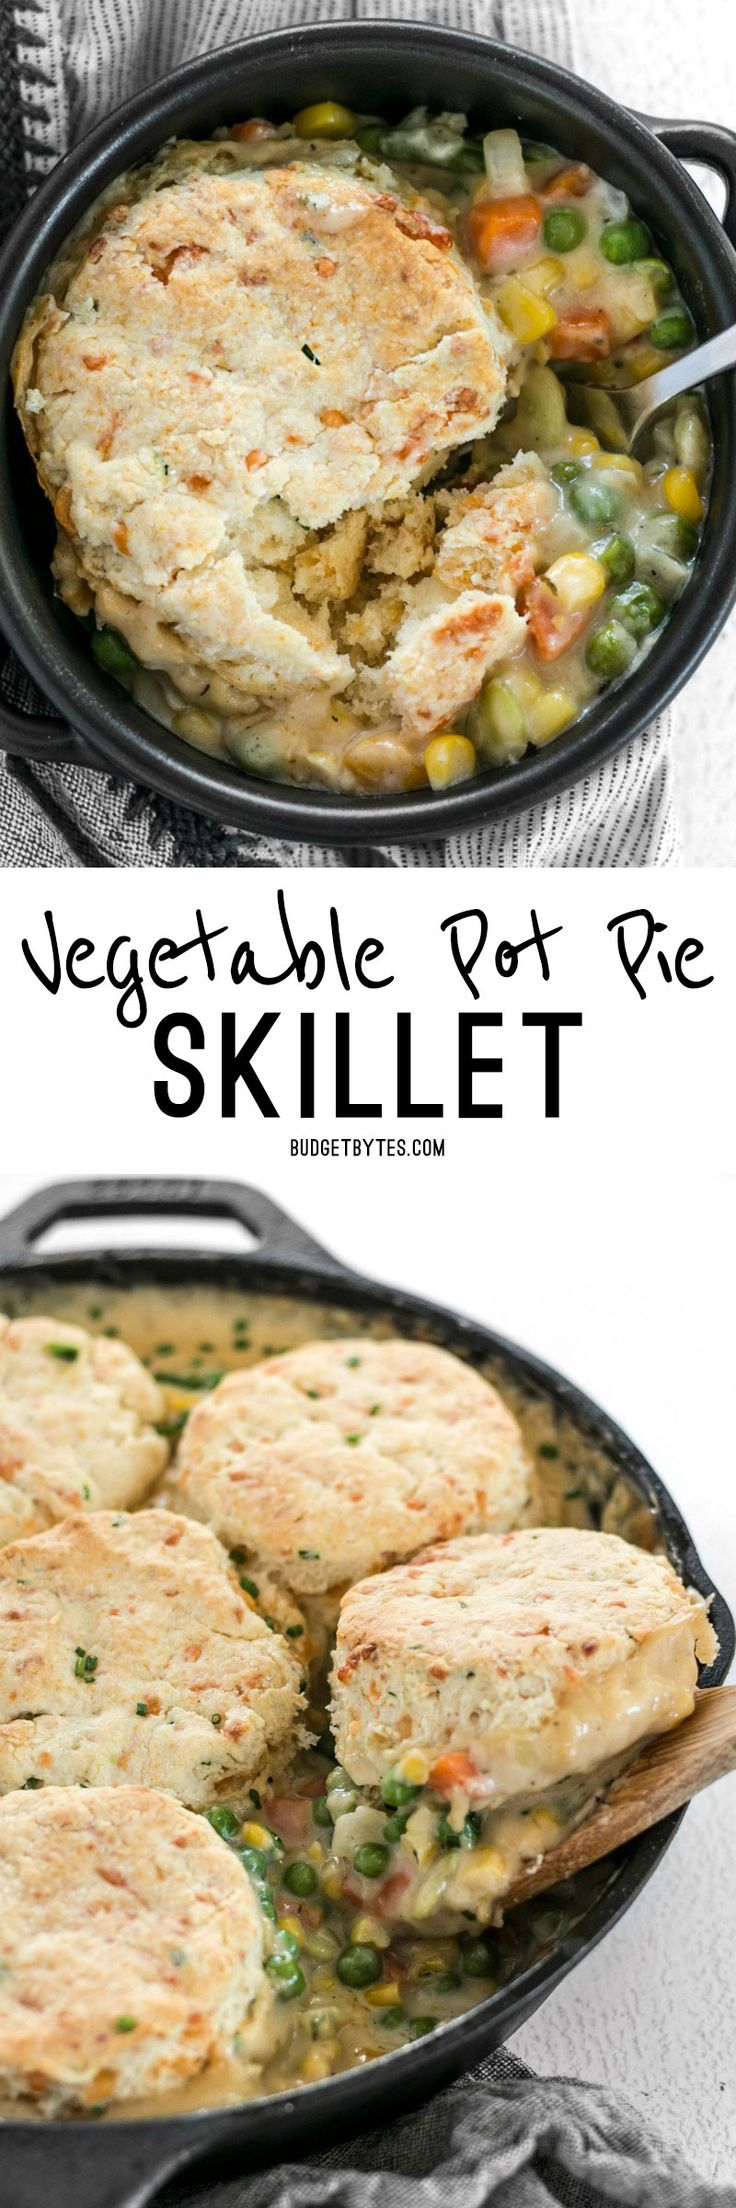 This rich and comforting Vegetable Pot Pie Skillet meal is made faster and easy for weeknight dinners thanks to frozen vegetables. BudgetBytes.com